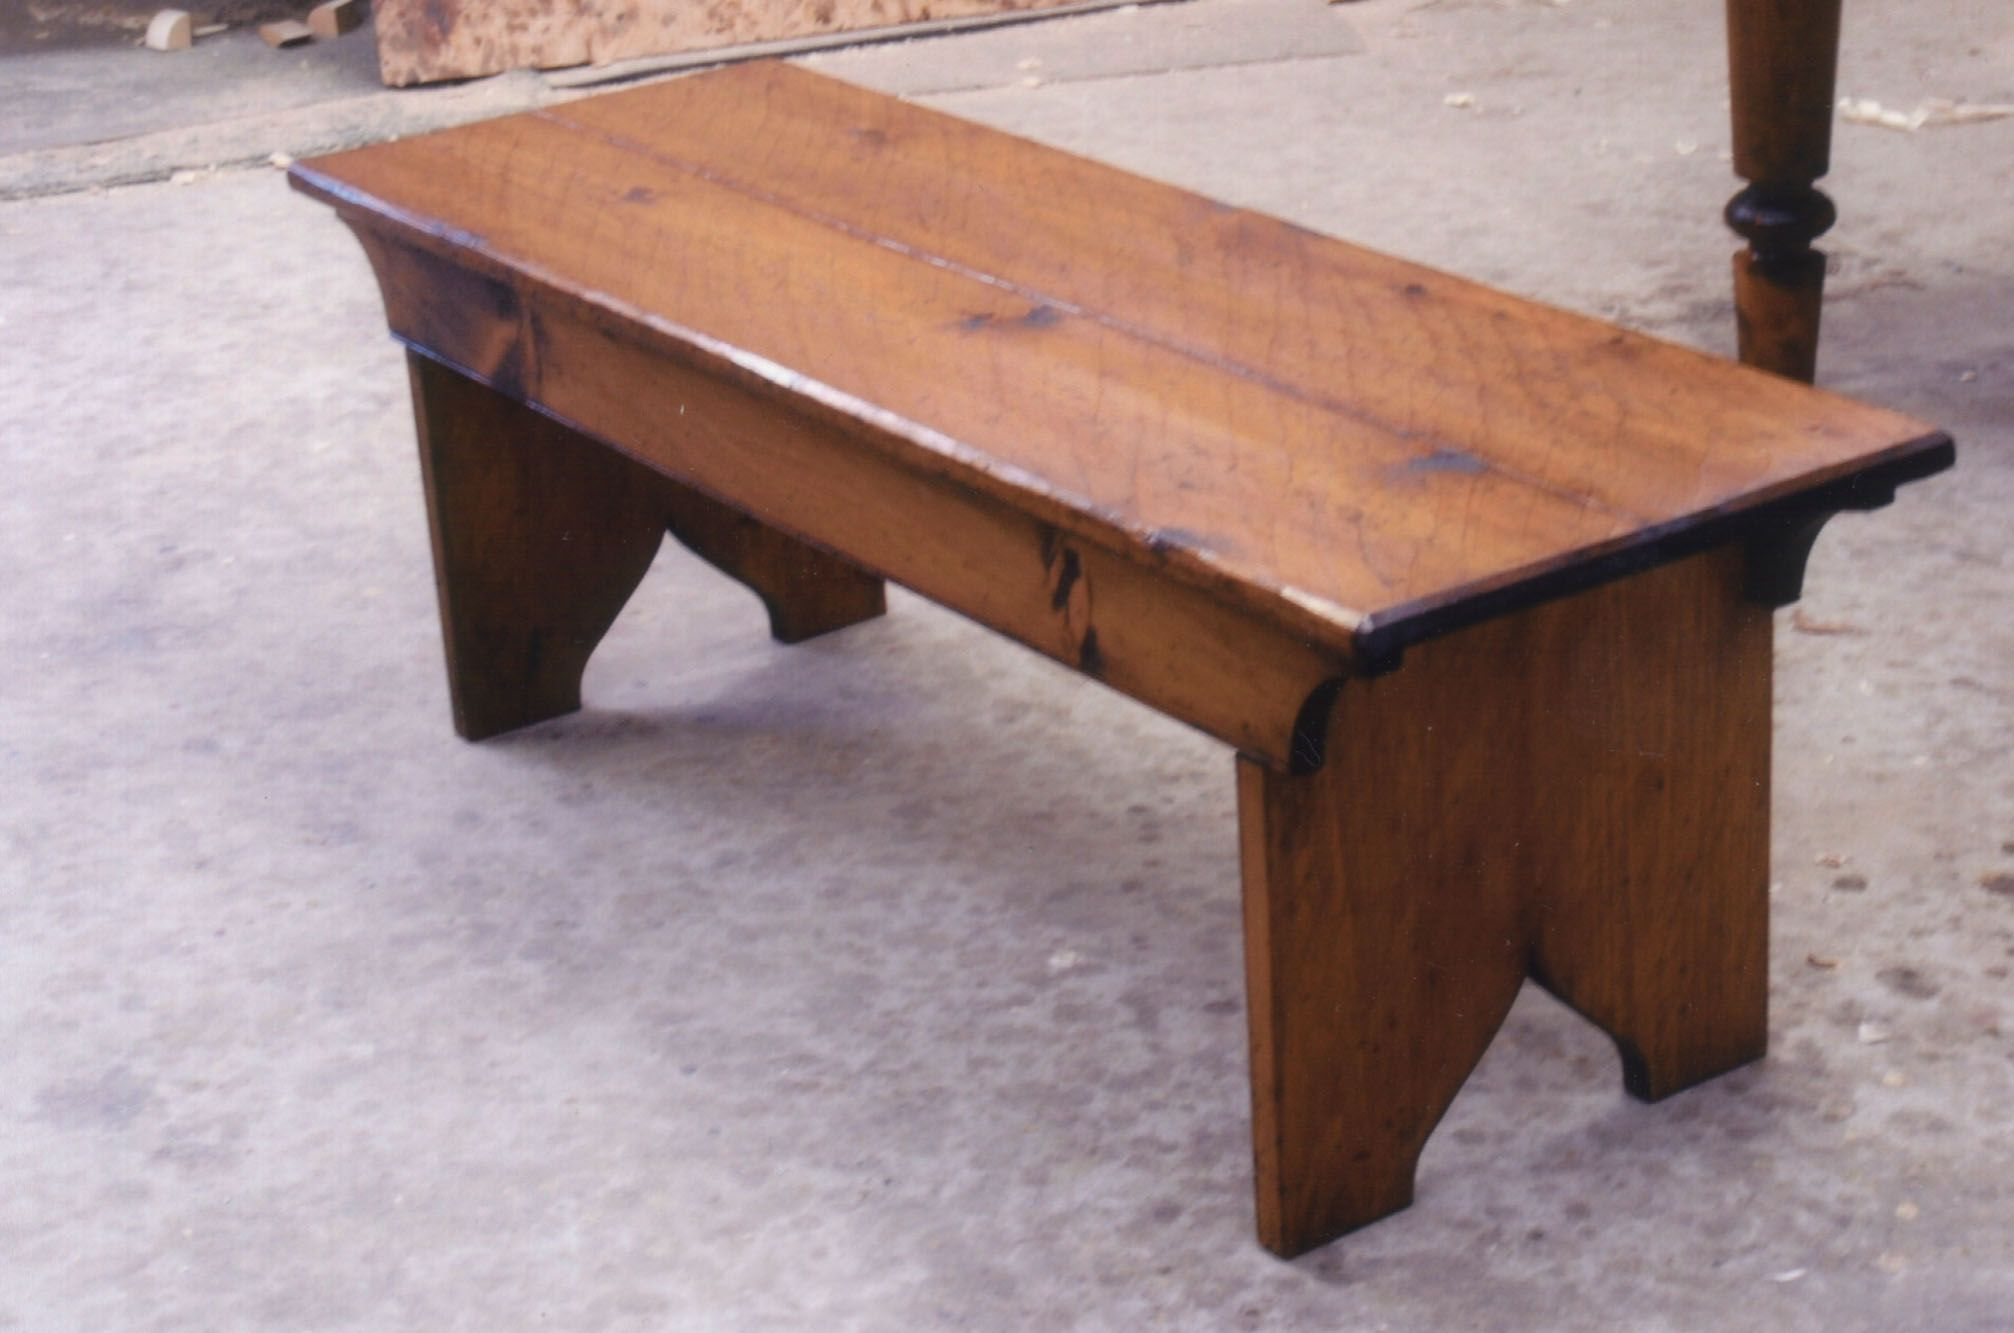 Wooden Bench Table Bench Pictures Pine Farmhouse Table Benches Areavailable In Any